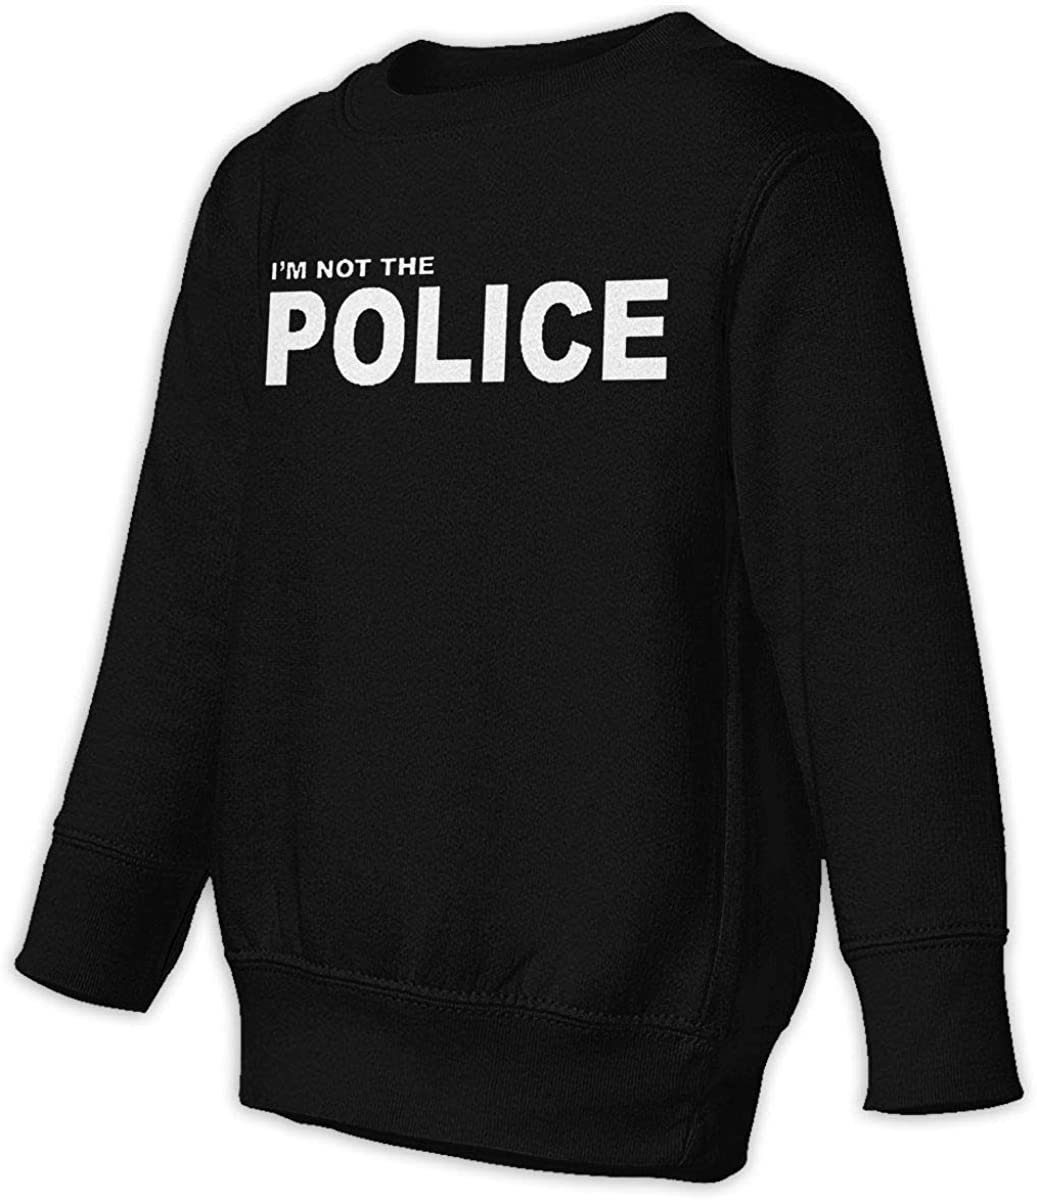 wudici Im Not The Police Logo Boys Girls Pullover Sweaters Crewneck Sweatshirts Clothes for 2-6 Years Old Children